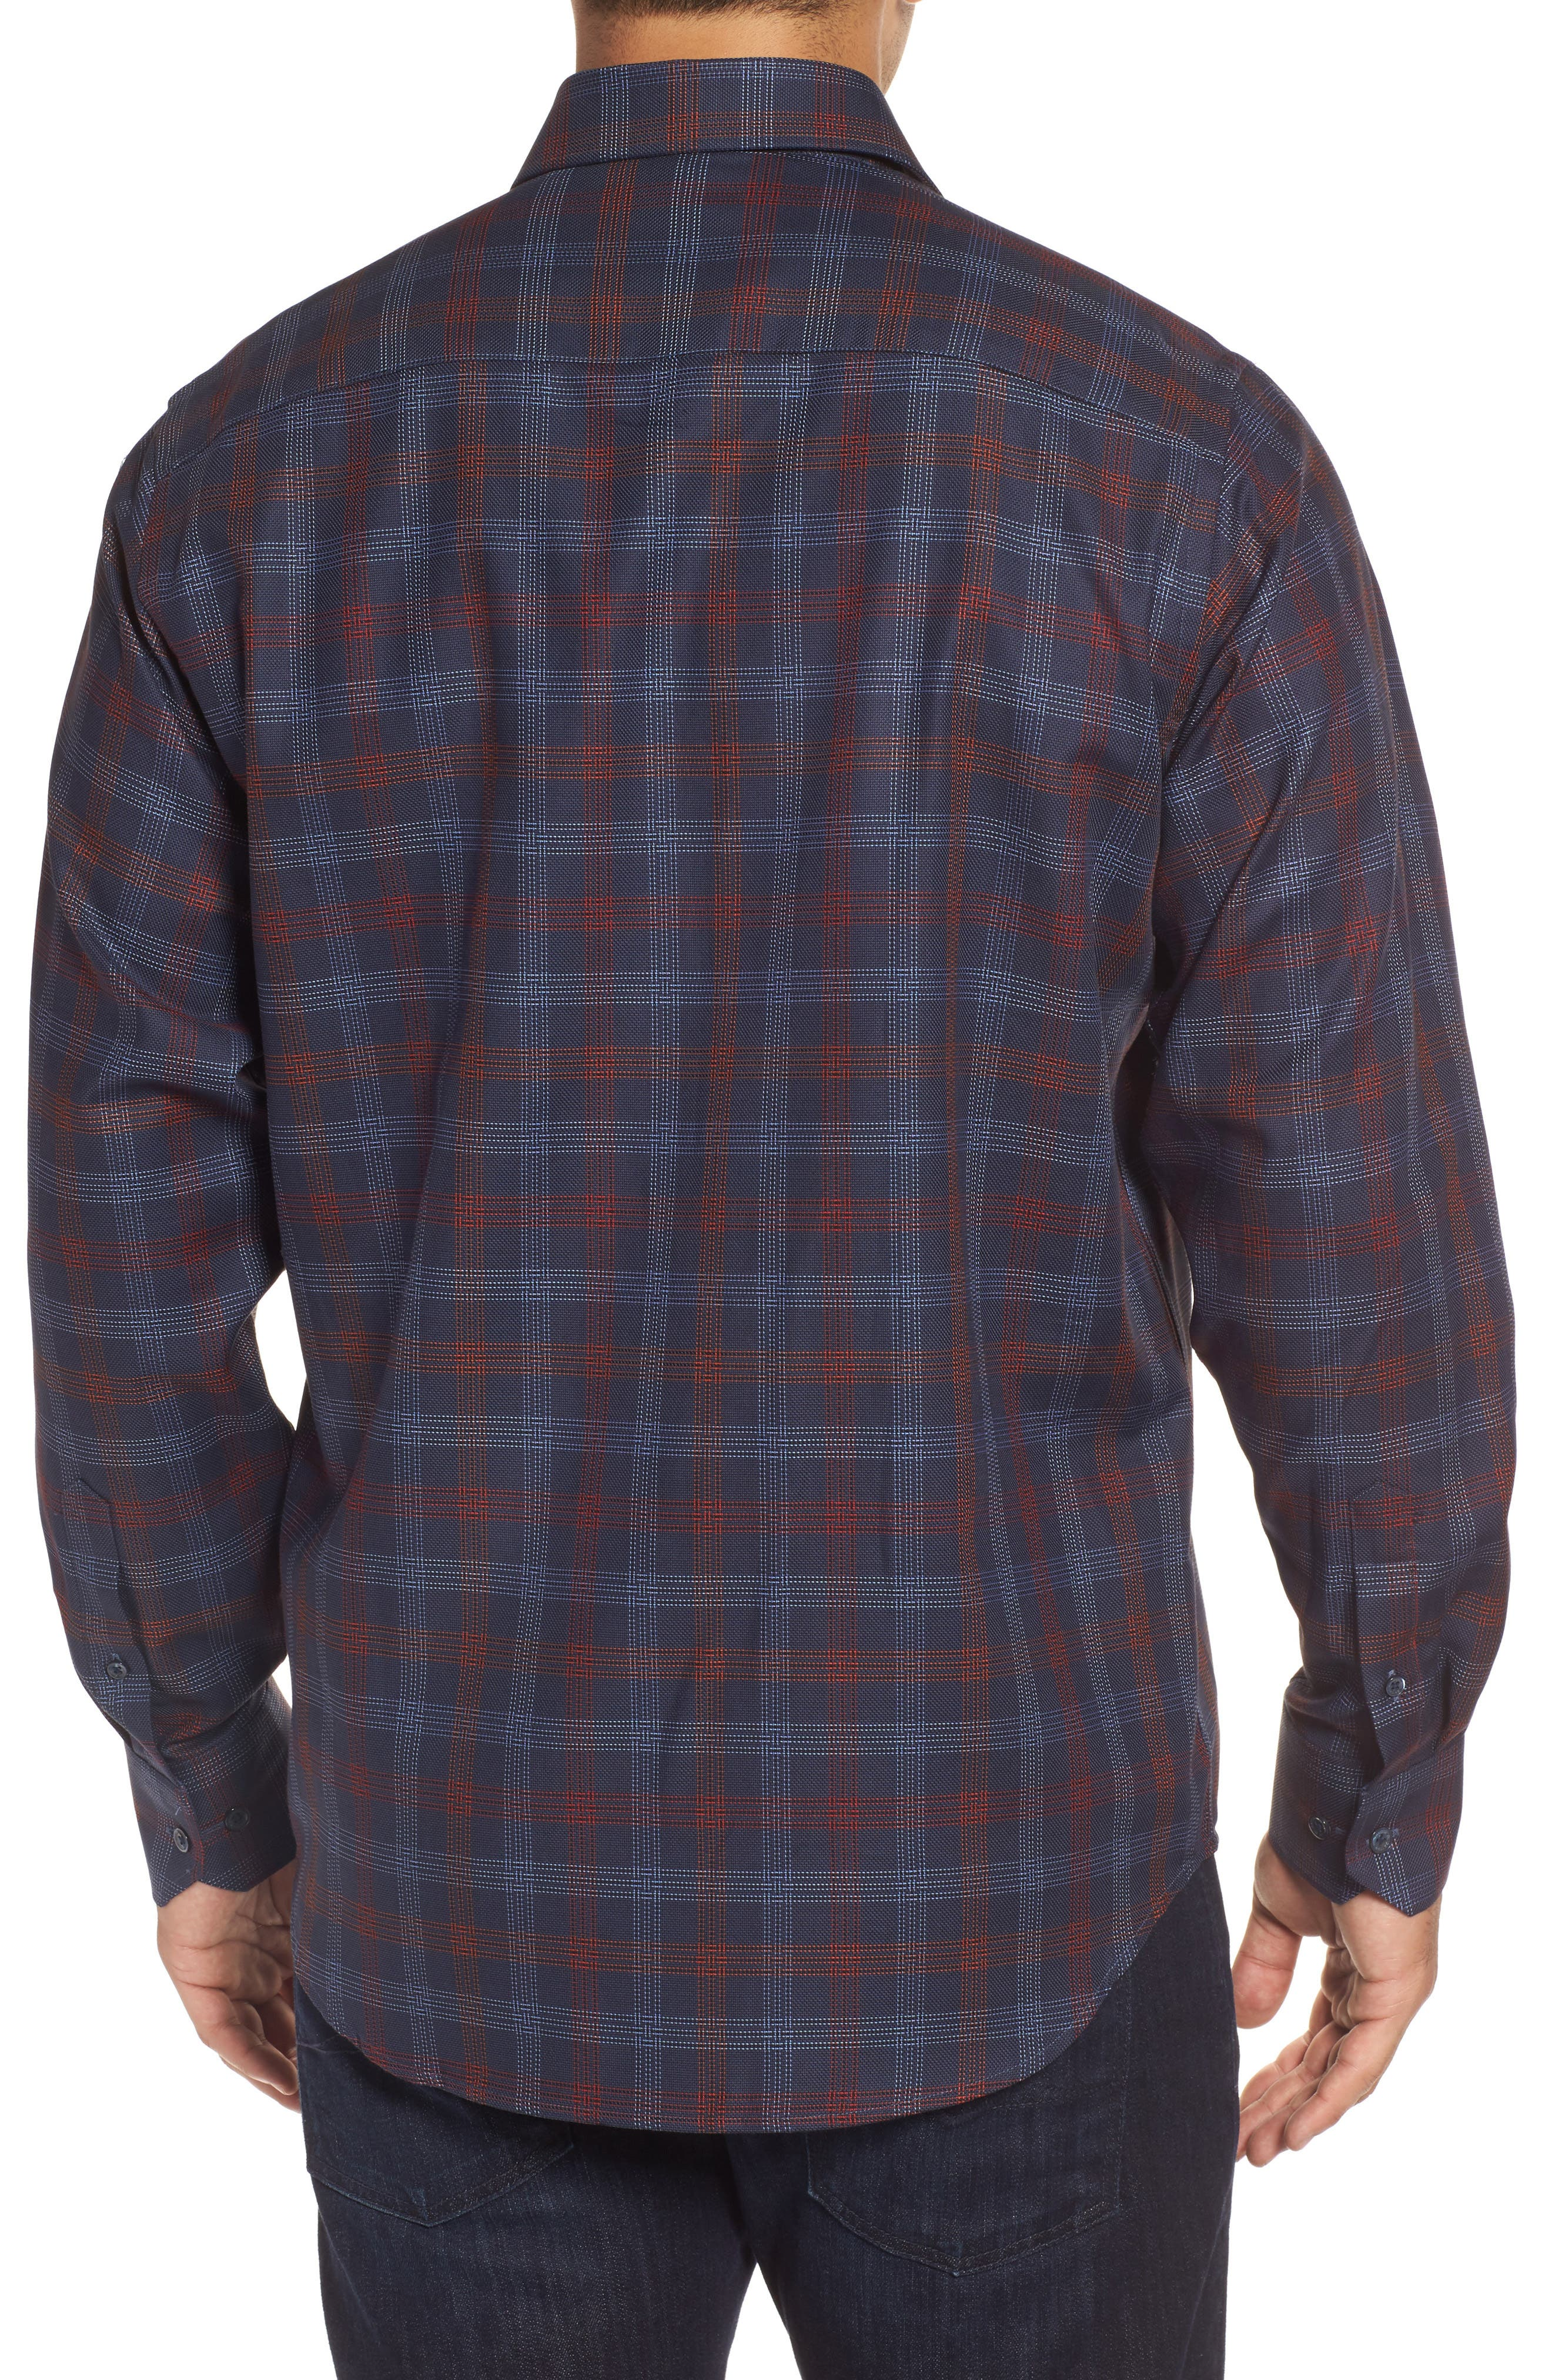 Classic Fit Pinstripe Check Sport Shirt,                             Alternate thumbnail 2, color,                             410